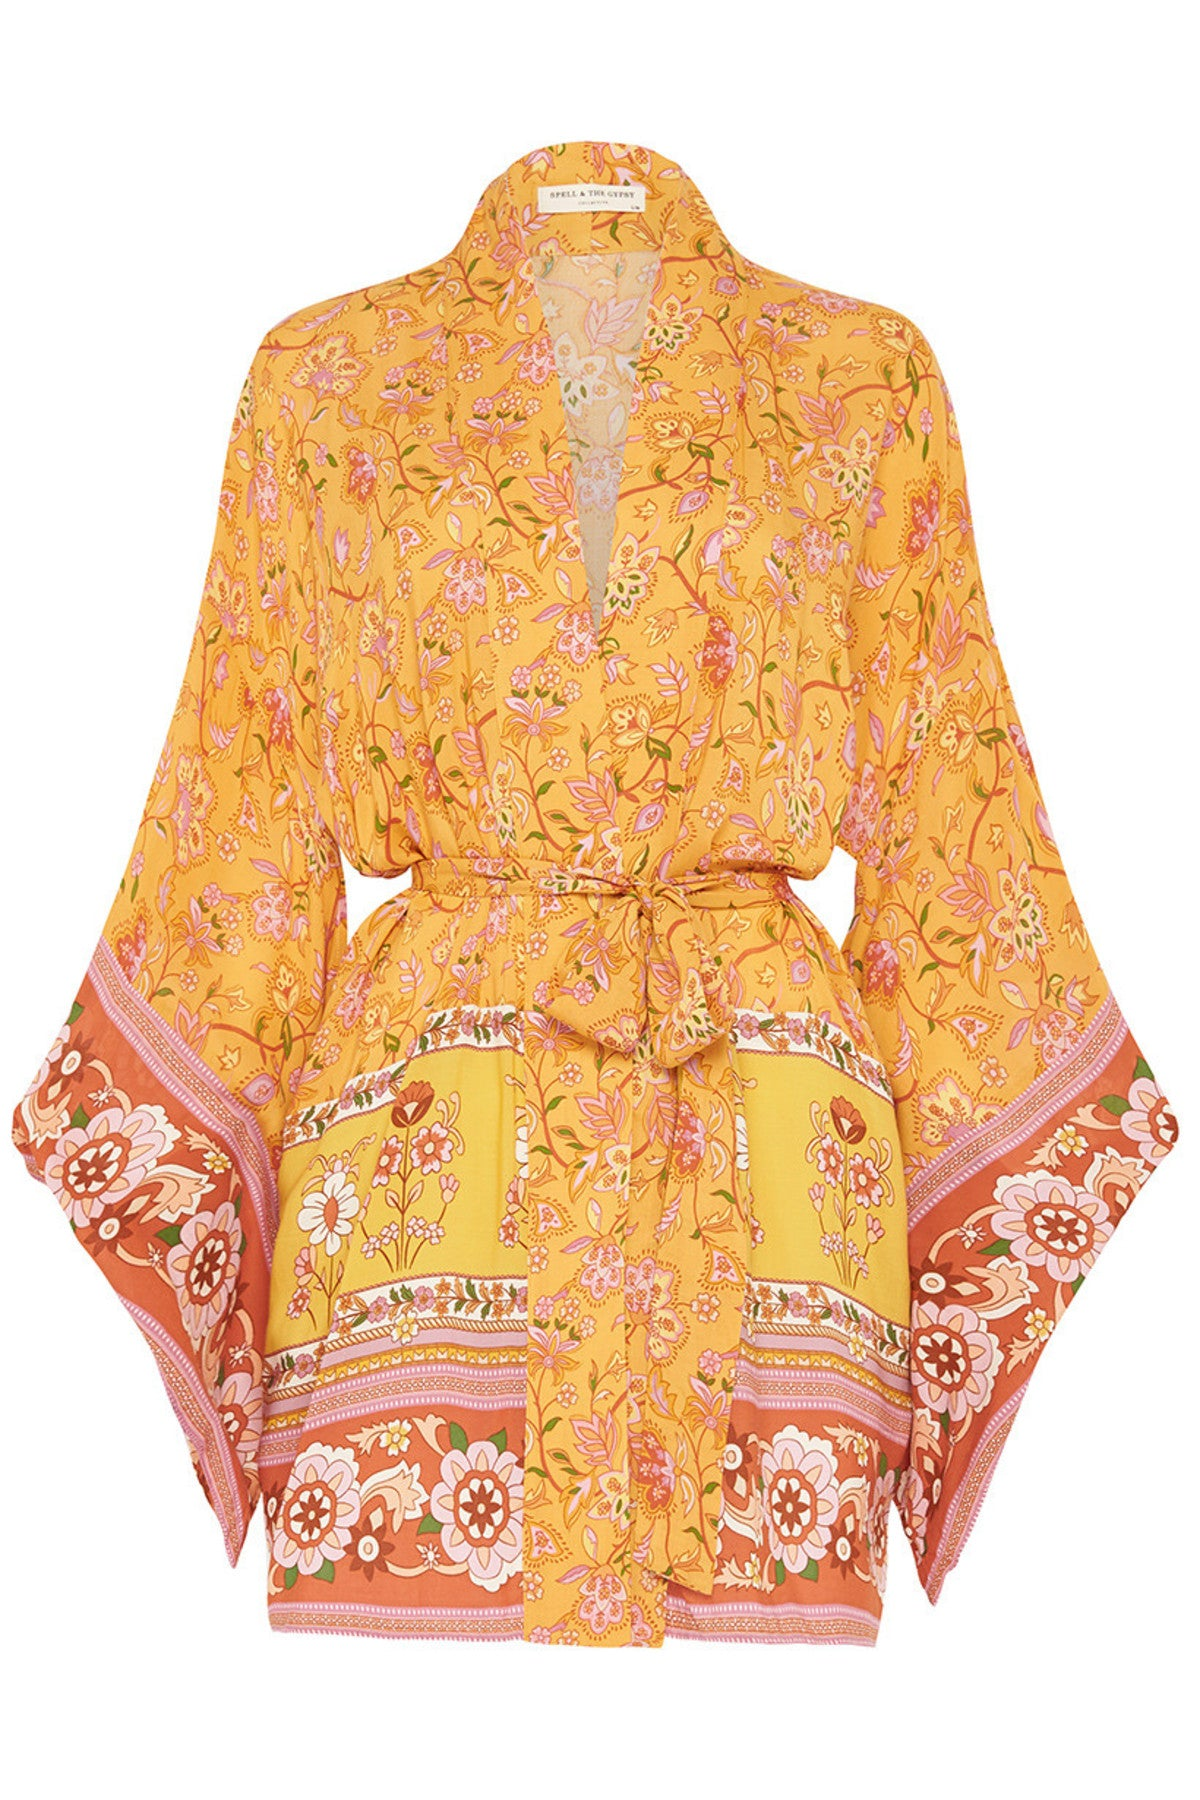 Portobello Road Short Robe-Mustard Seed